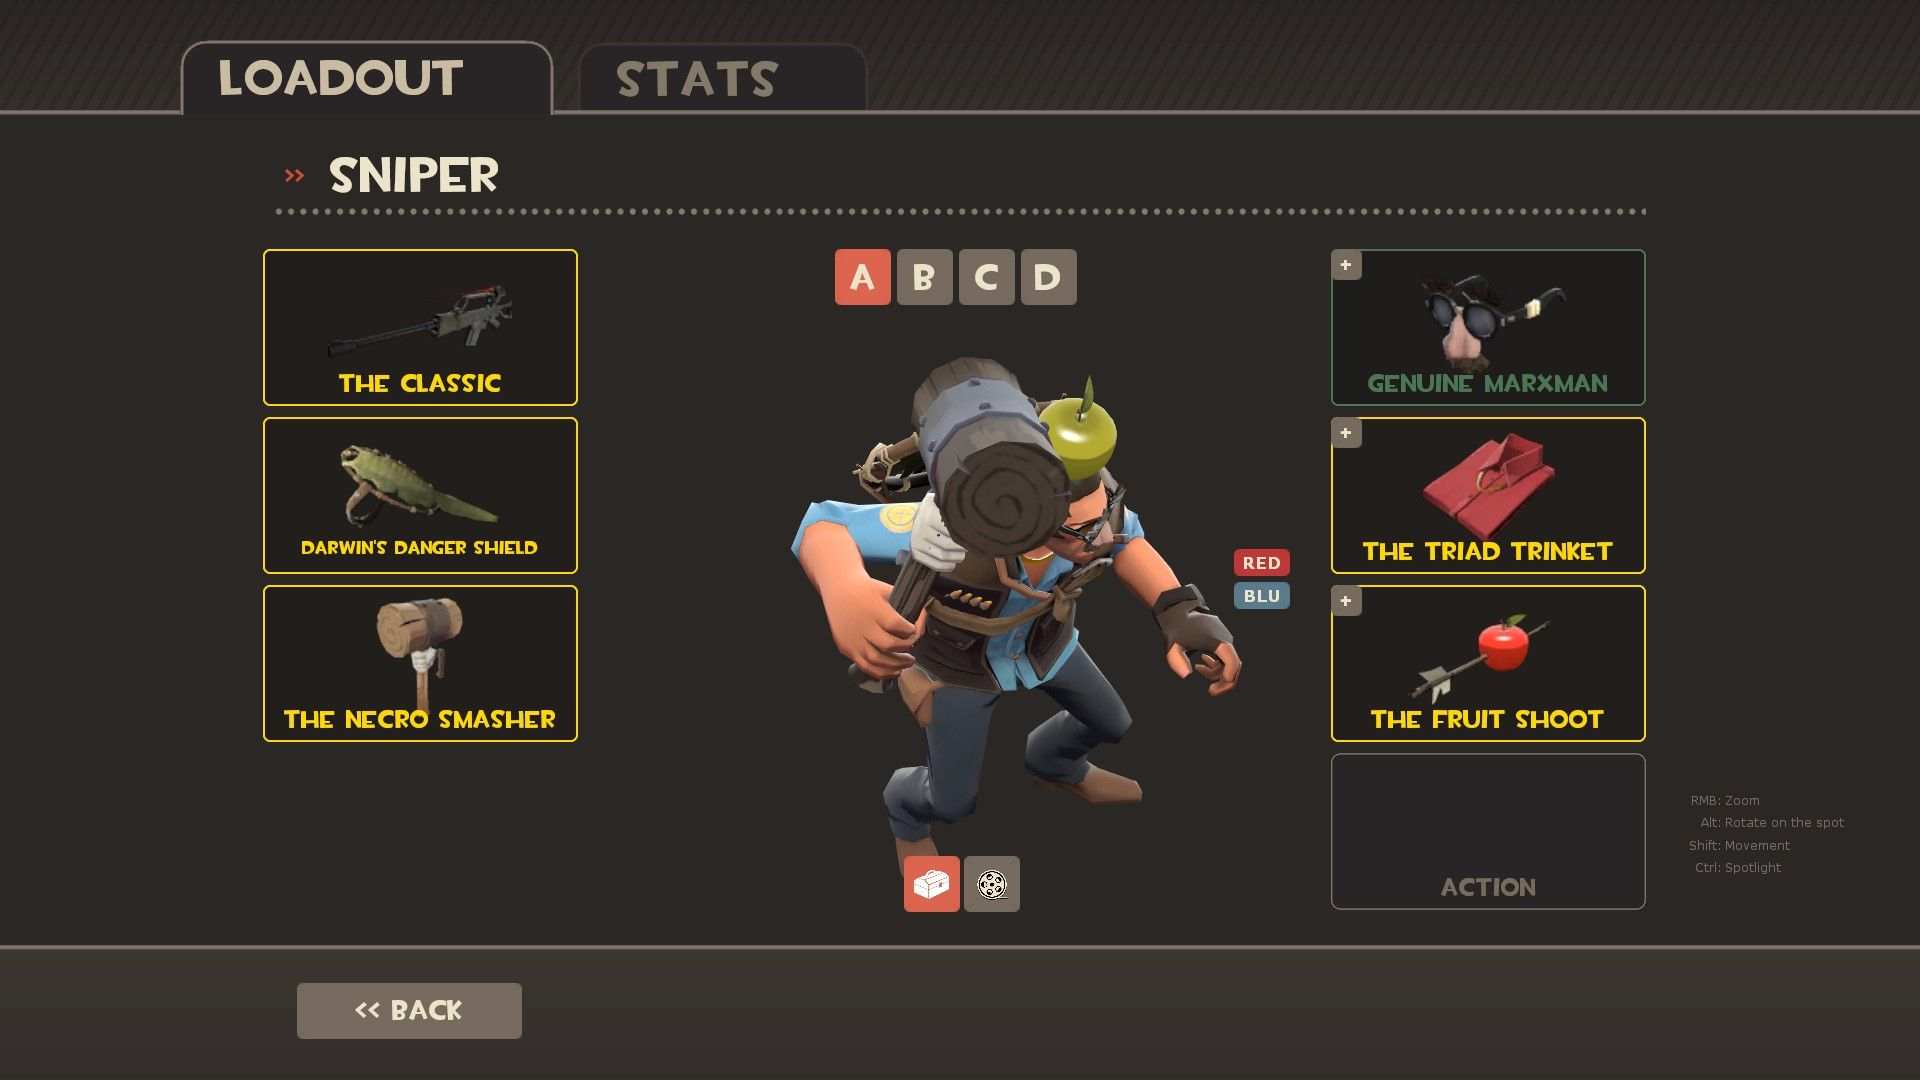 Til the Necro Smasher has a different type of wood depending on the team #games #teamfortress2 #steam #tf2 #SteamNewRelease #gaming #Valve